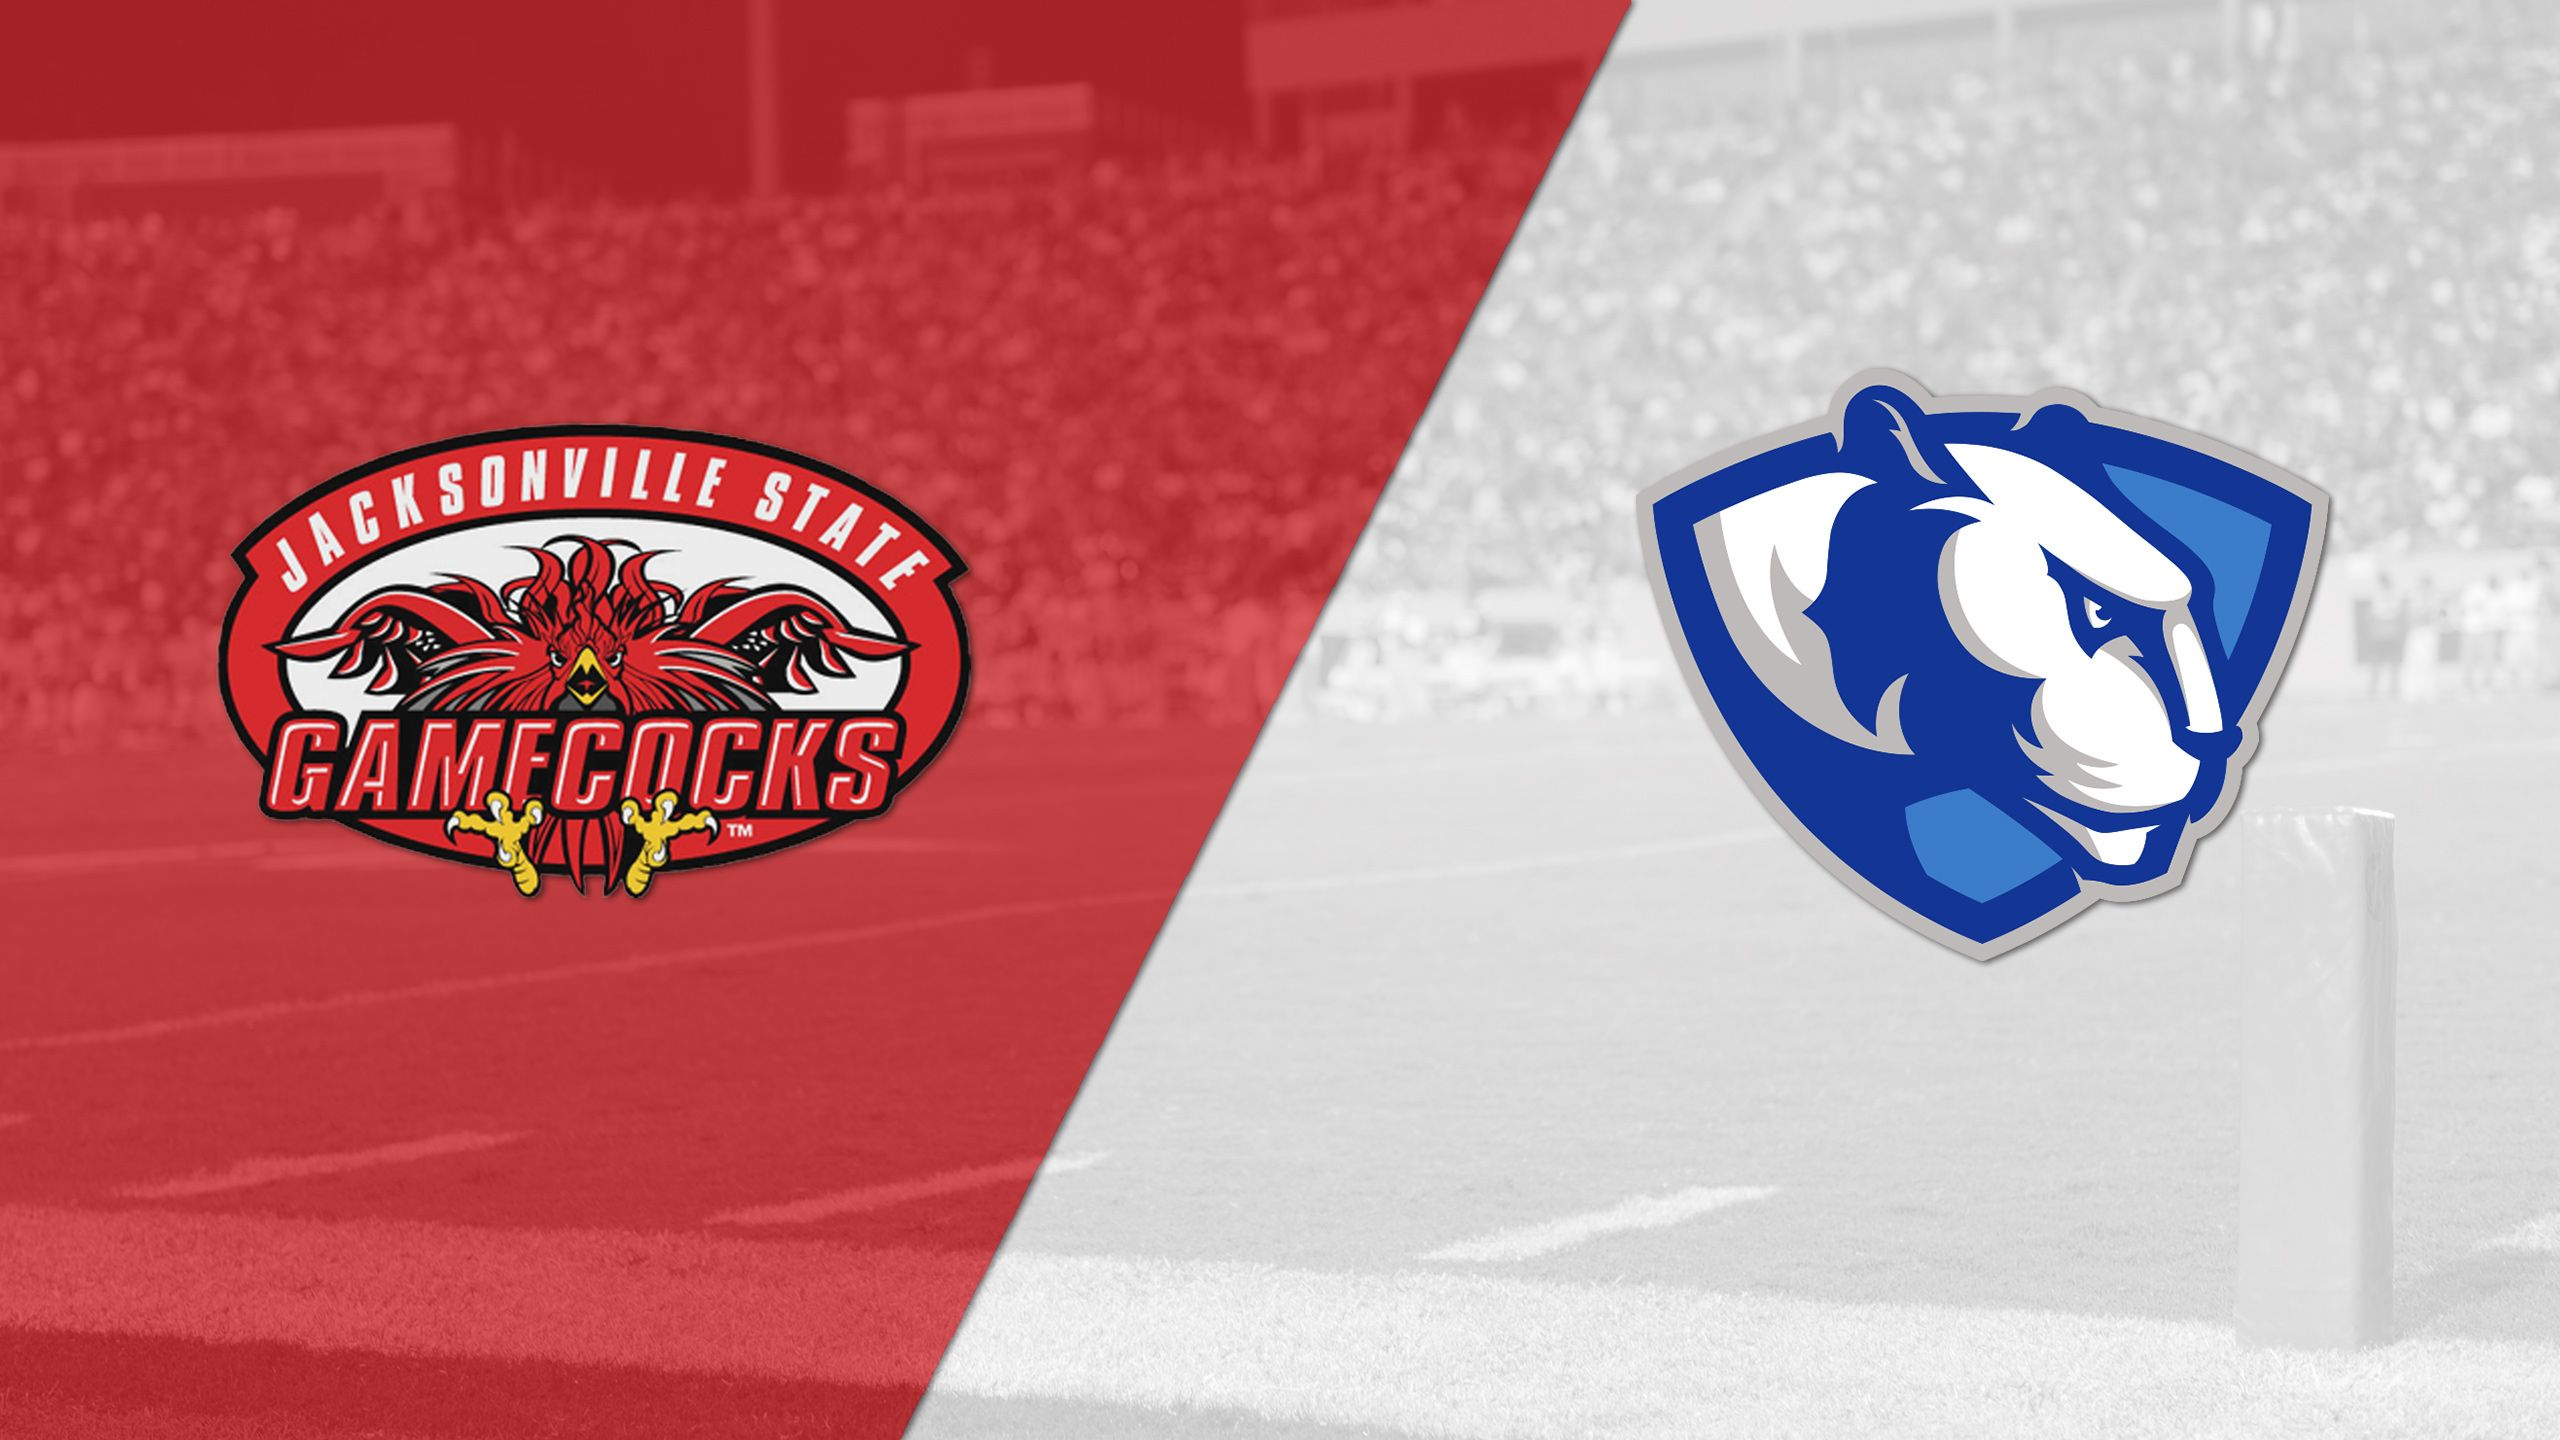 Jacksonville State vs. Eastern Illinois (Football)